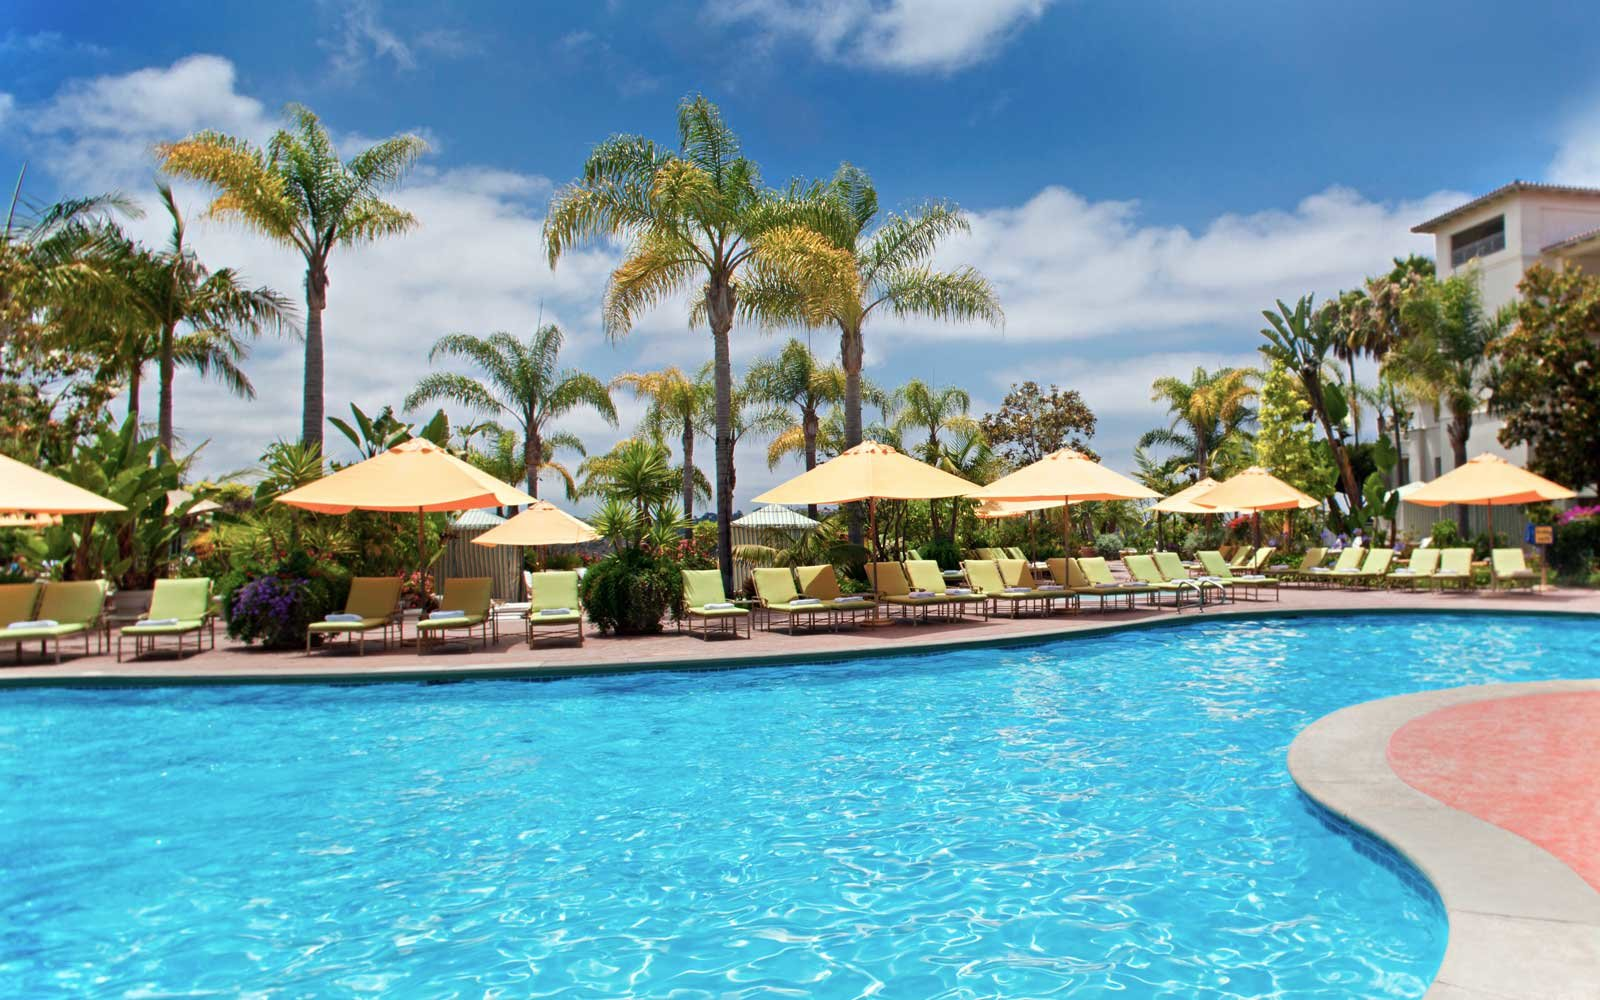 Park Hyatt Aviara pool in California